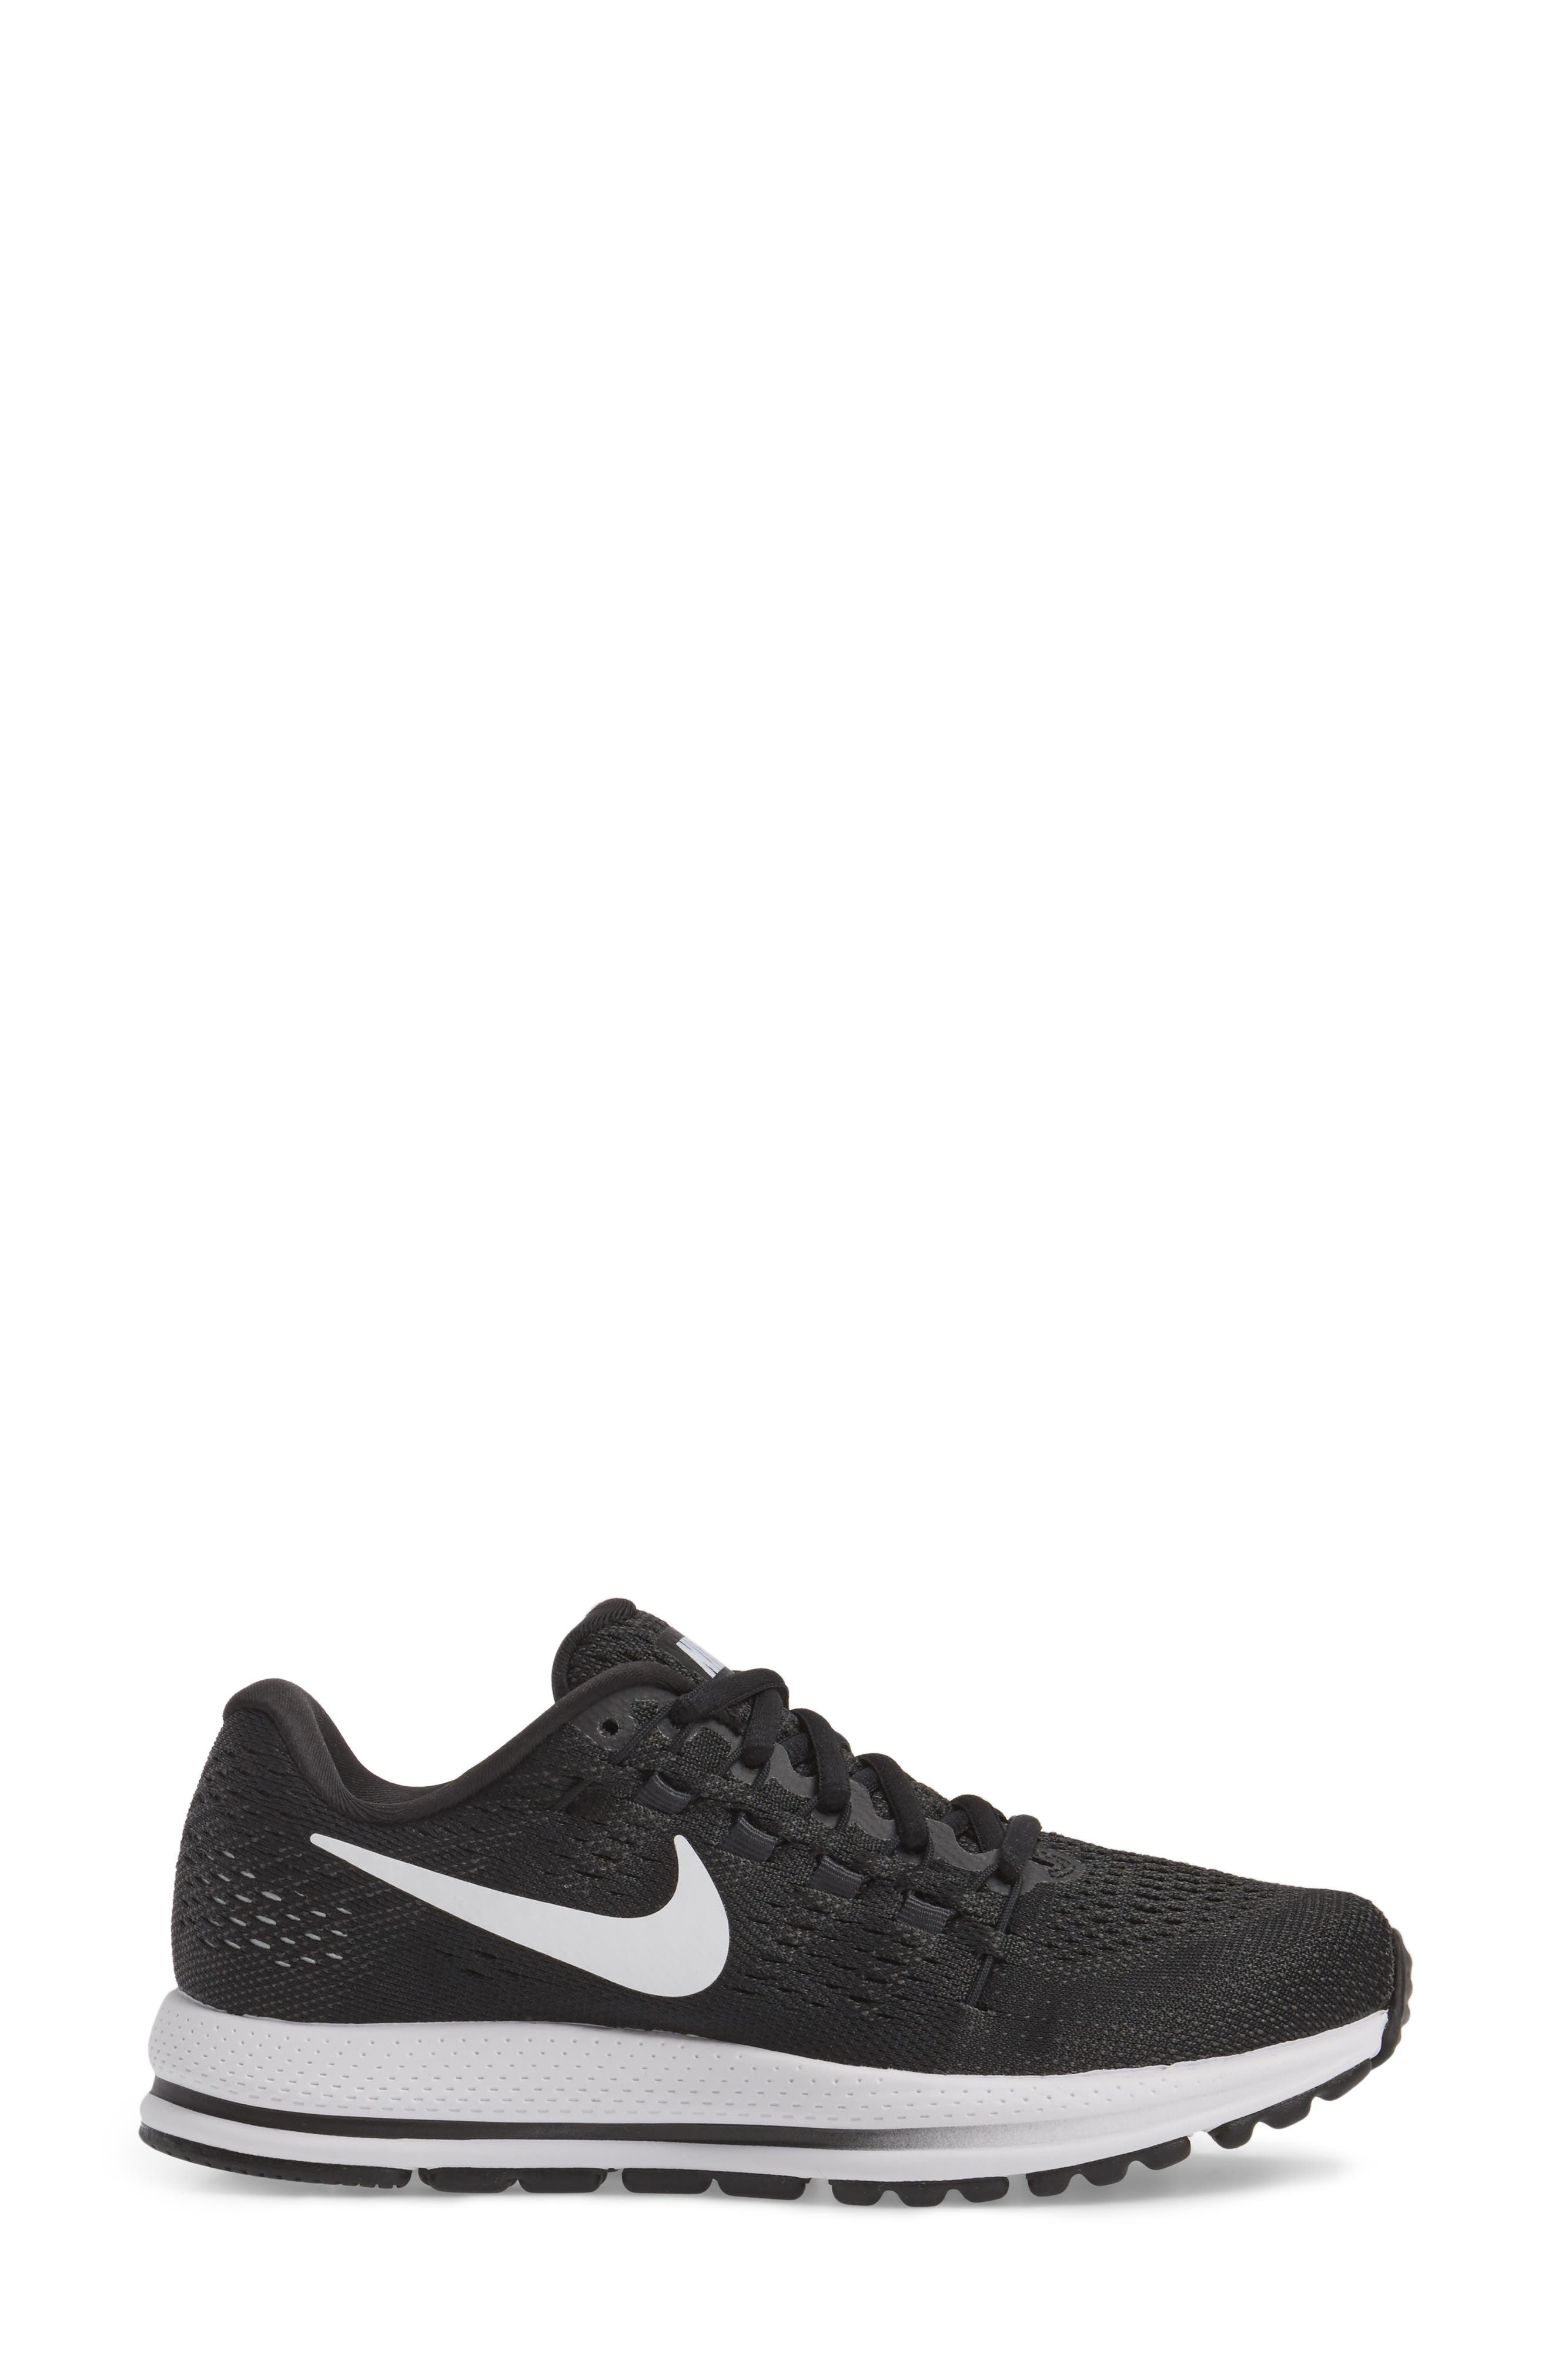 NIKE,                             Air Zoom Vomero 12 Running Shoe,                             Alternate thumbnail 3, color,                             001